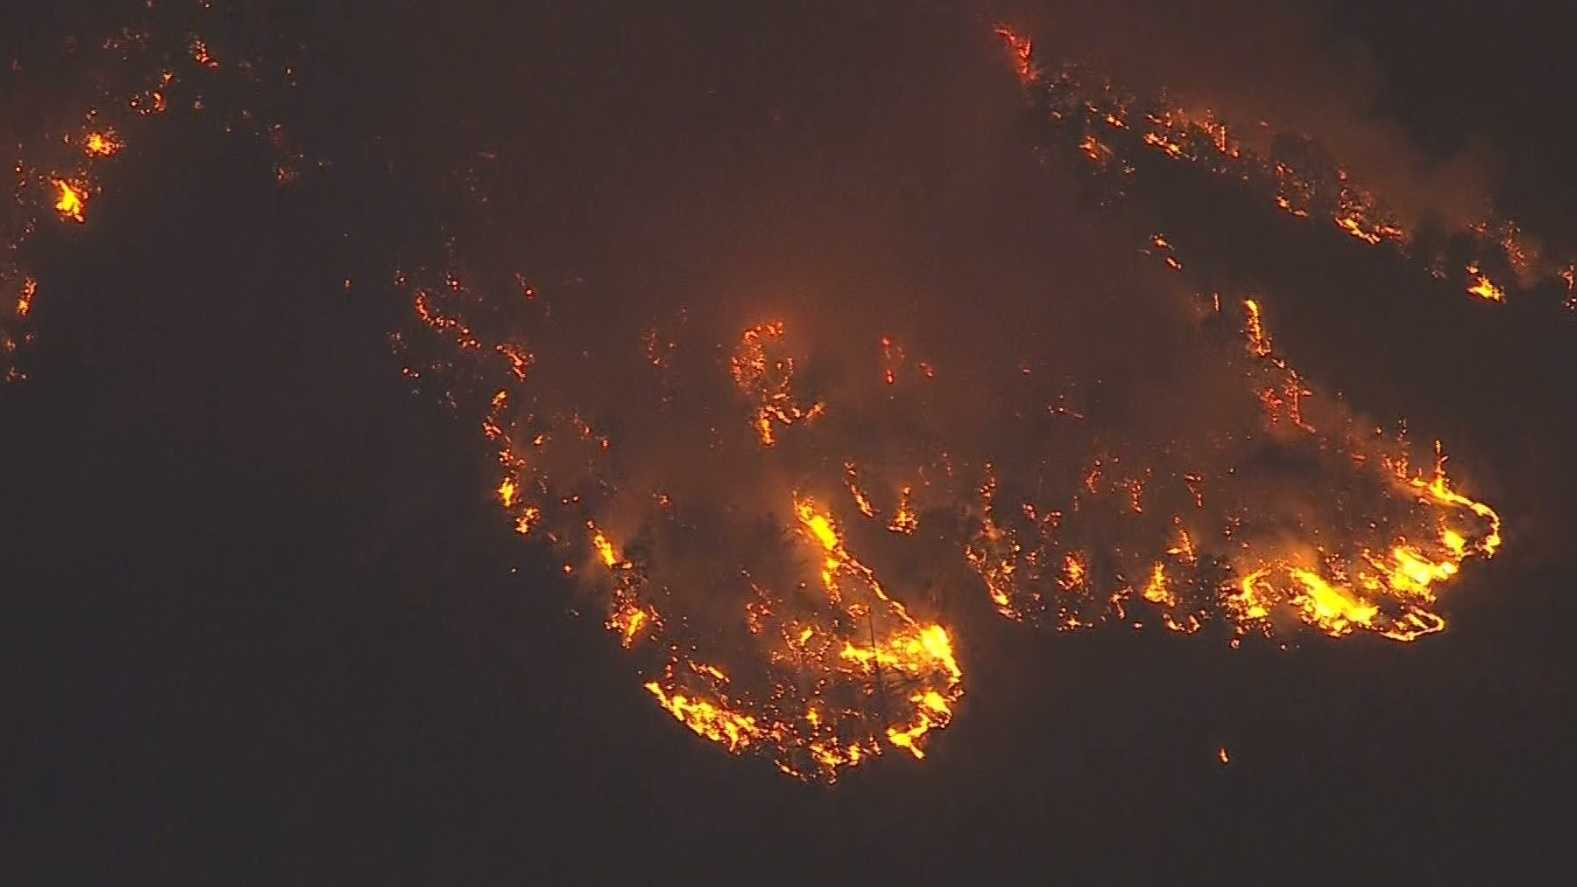 Southern California wildfire dubbed the Bluecut Fire